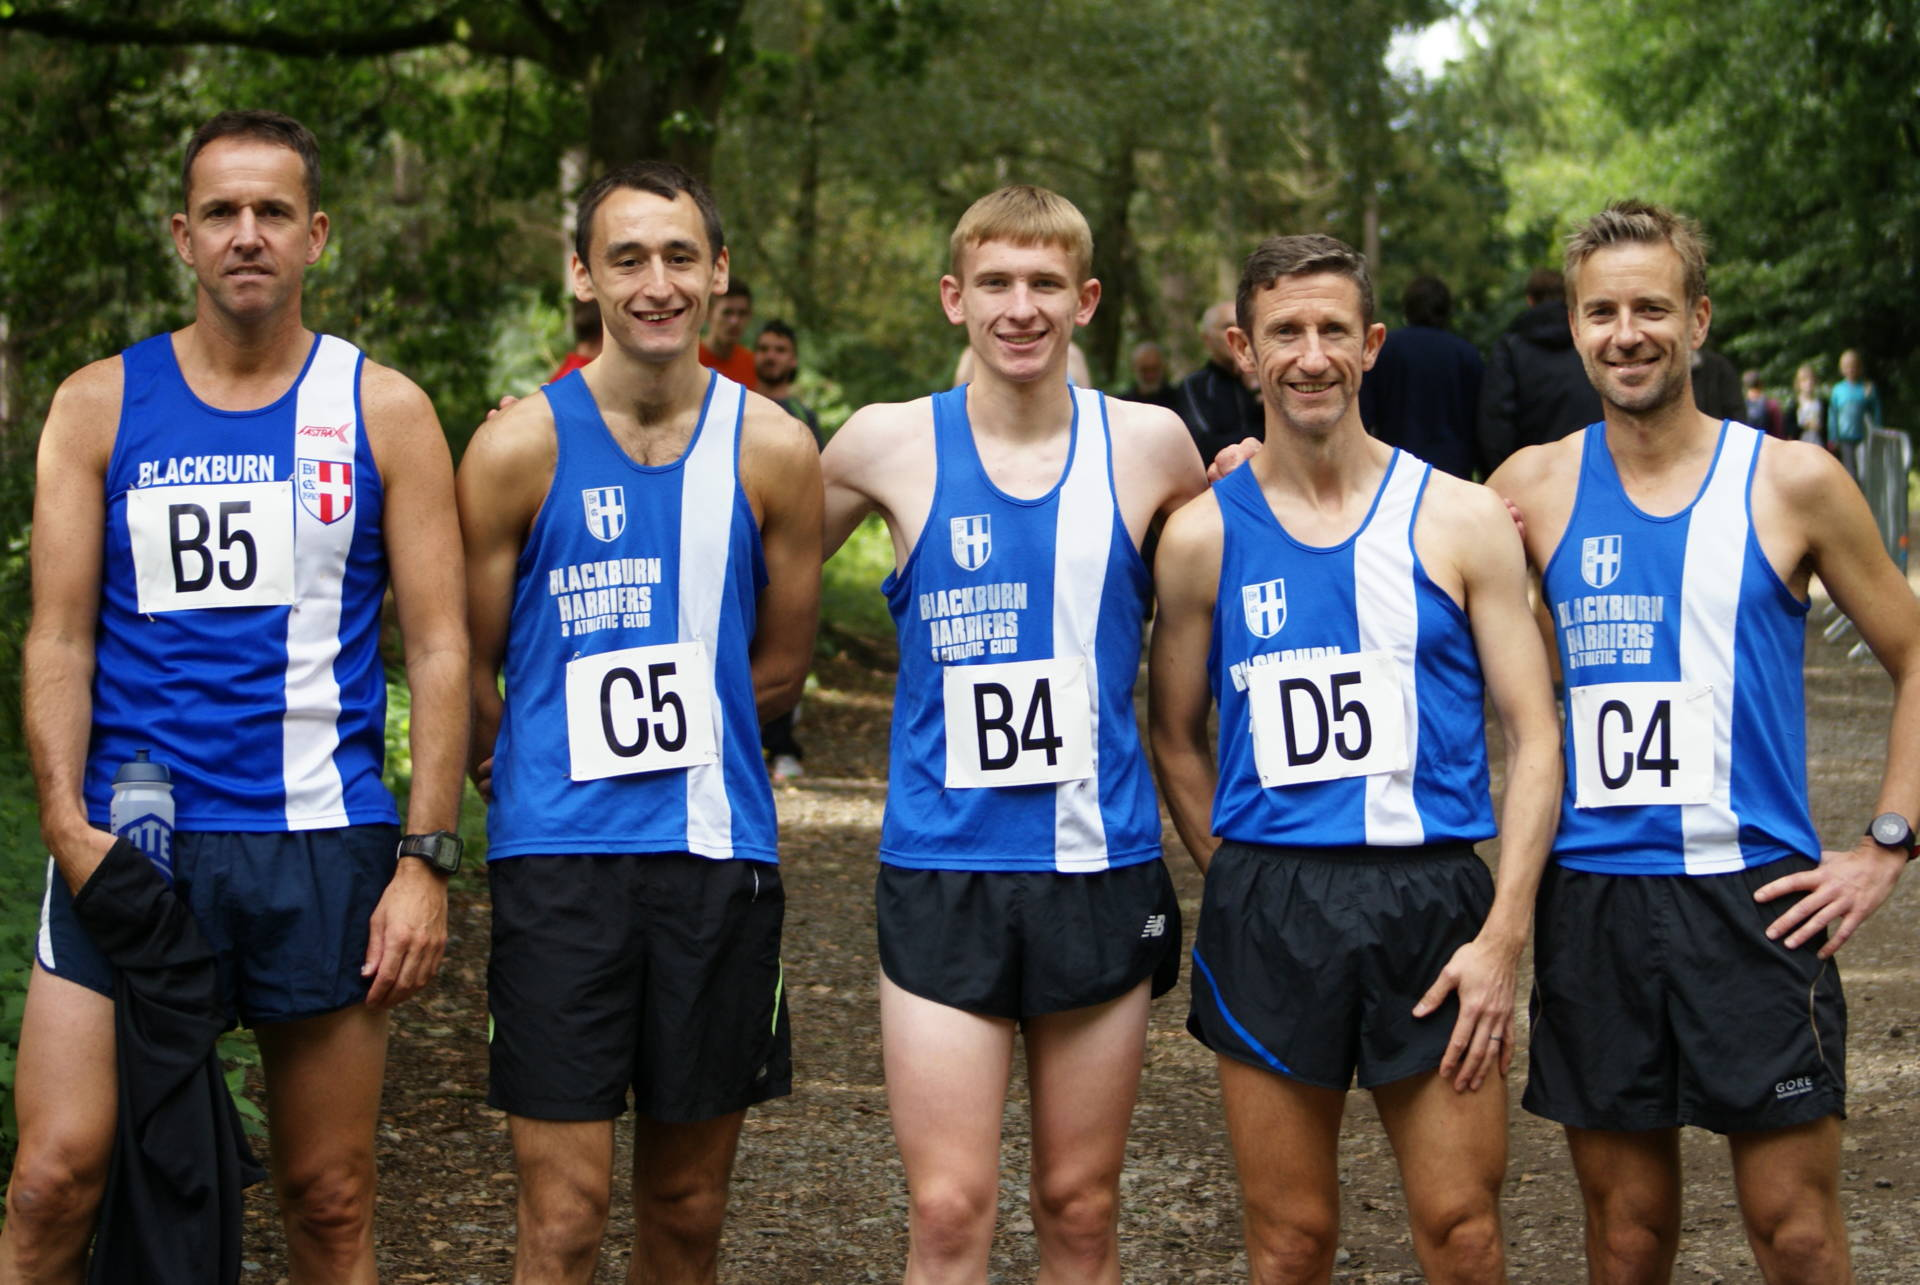 Six Medal positions and some good performances by the Harriers at the North West Road Relays